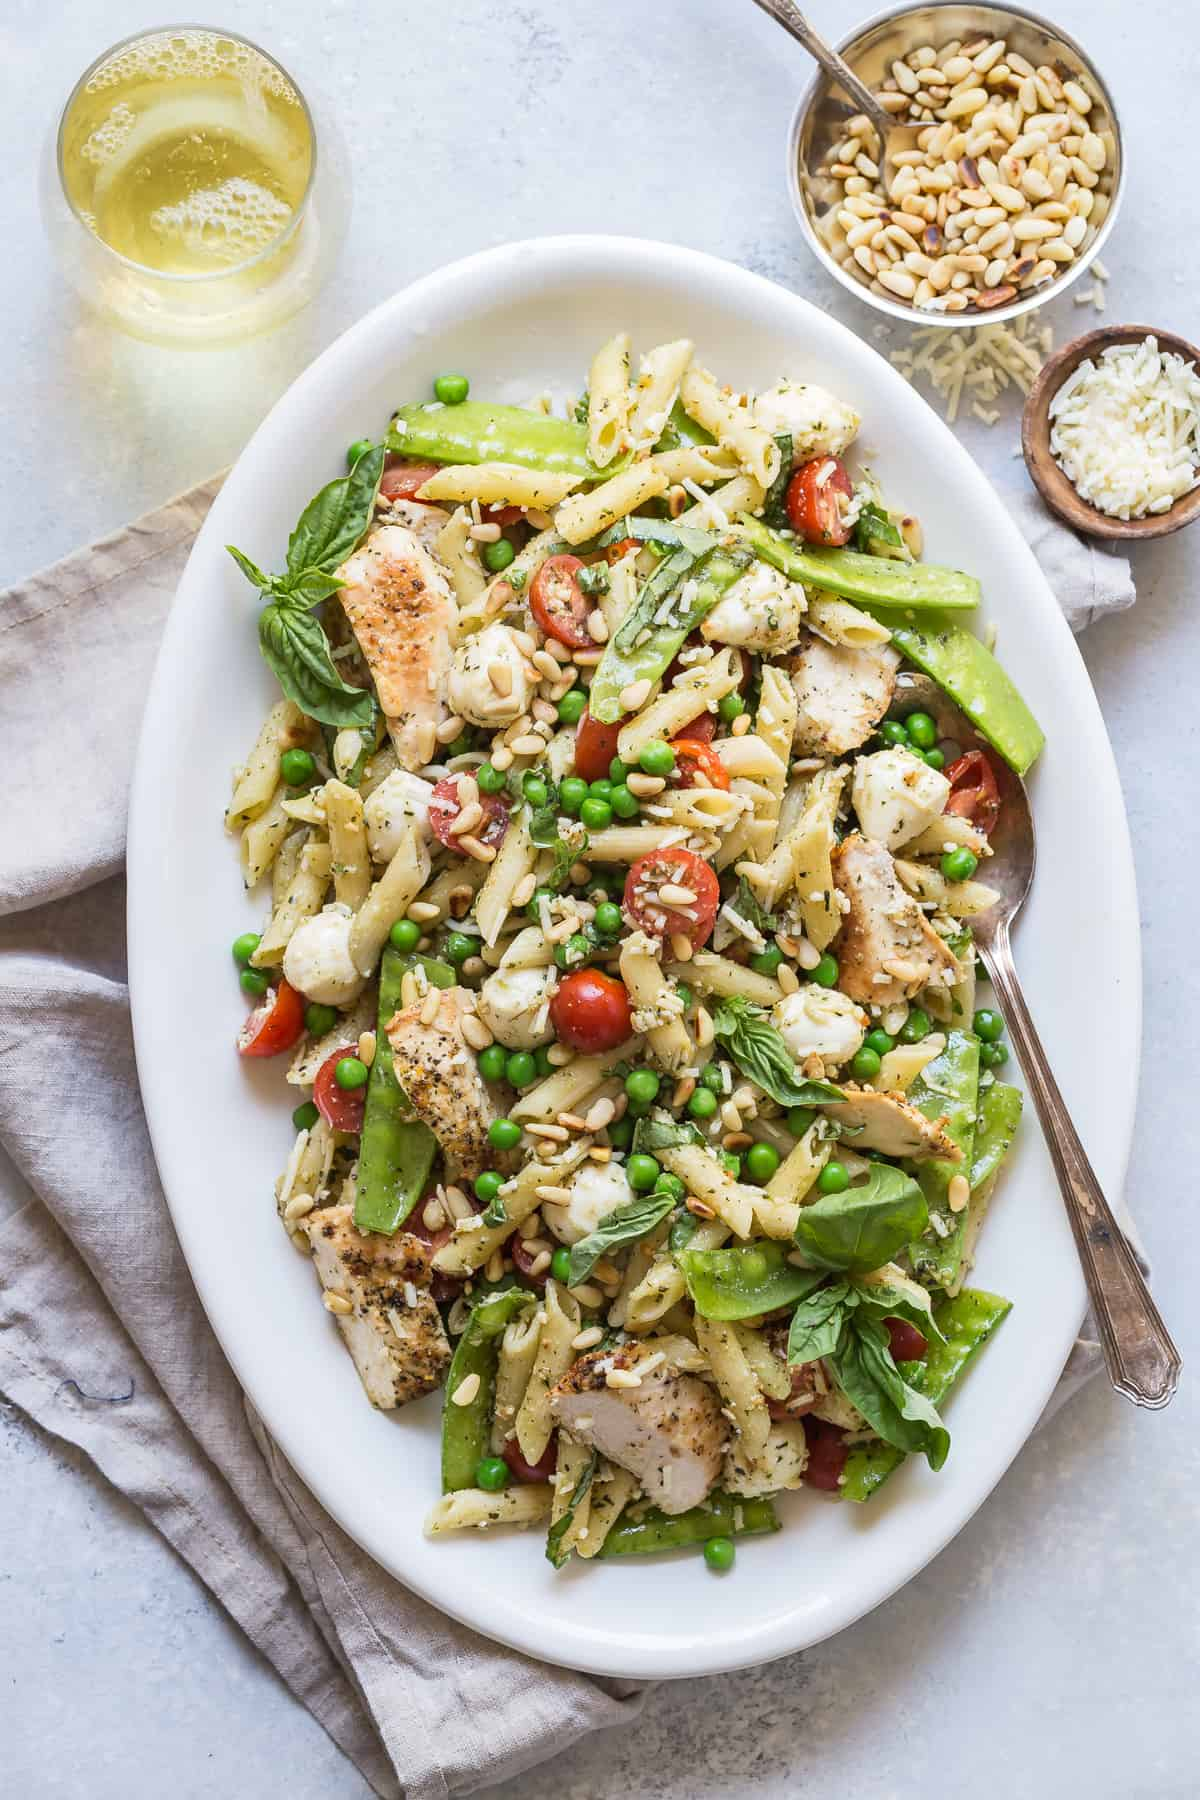 The perfect Pesto Pasta Salad loaded with snap peas, grilled chicken, peas and mozzarella!